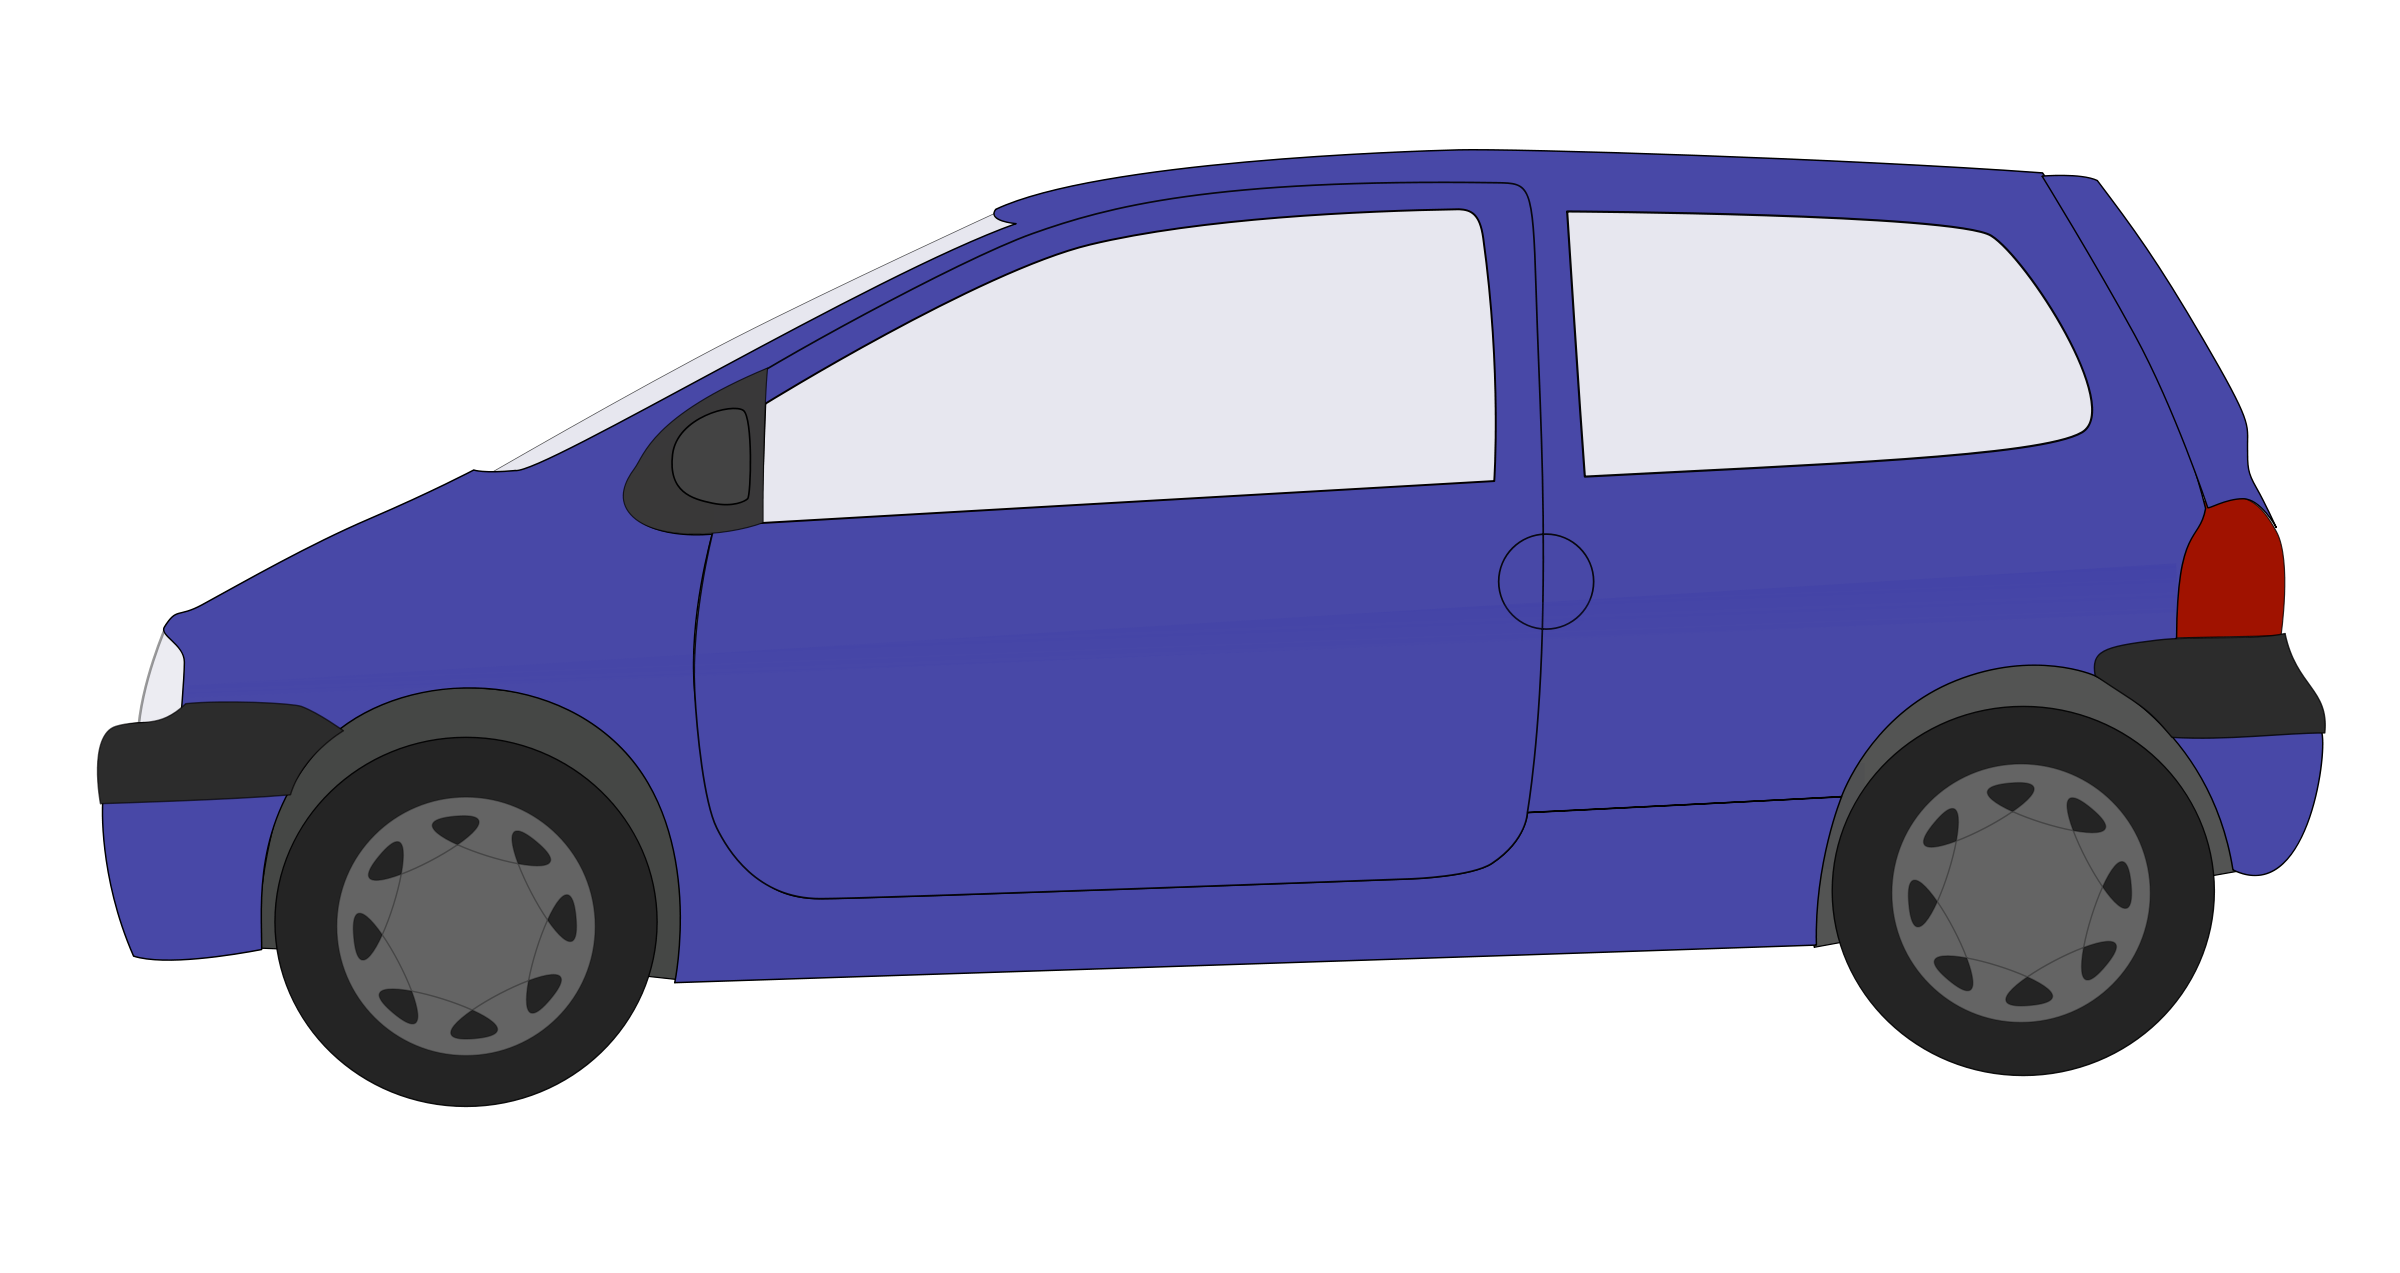 Clipart cars transparent background.  collection of car